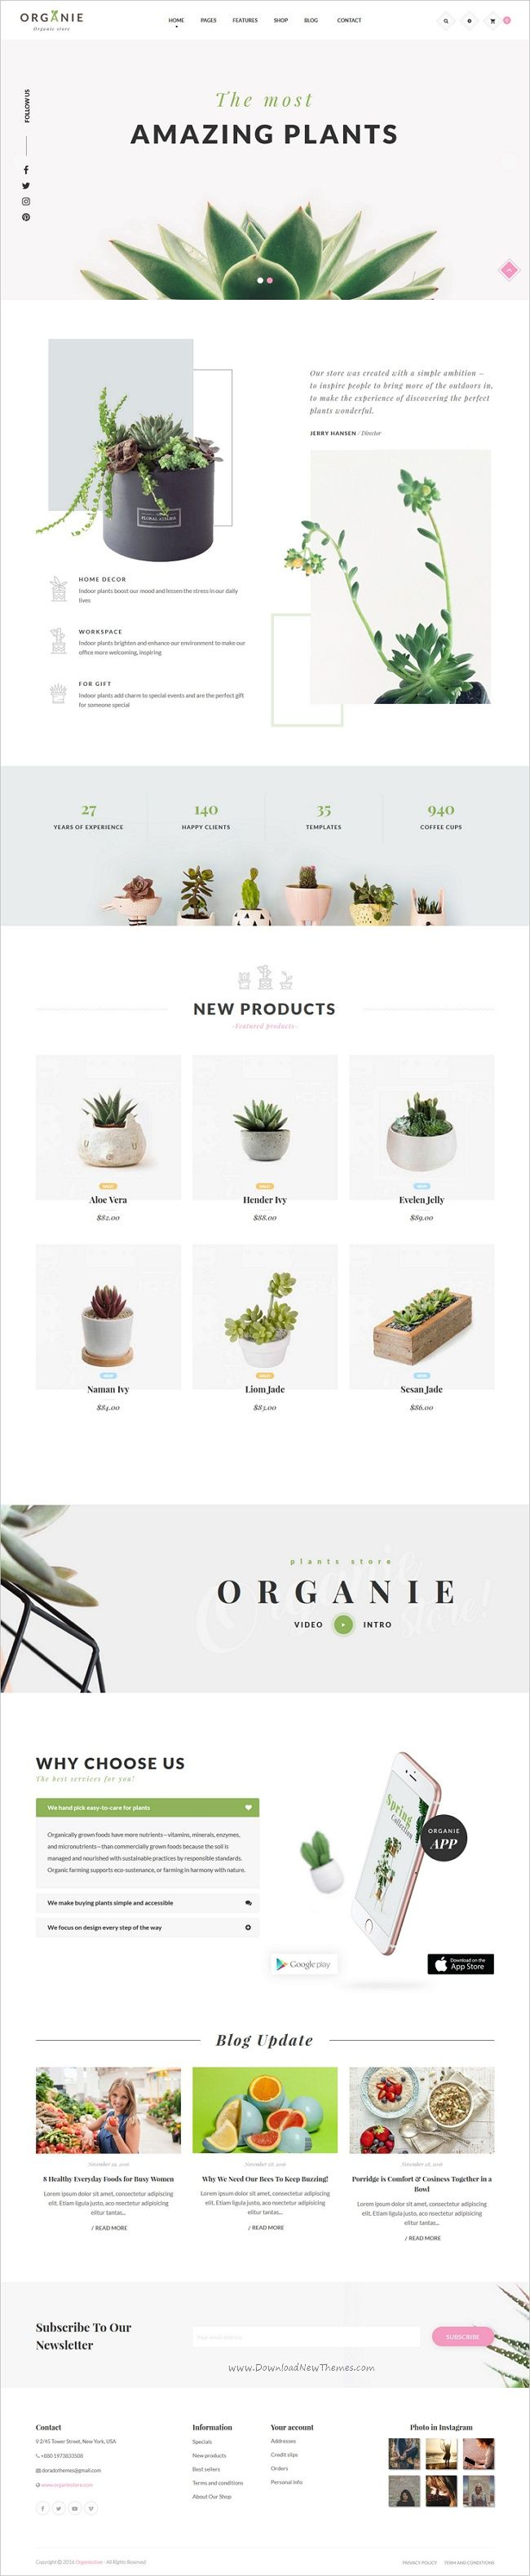 Organie is a wonderful responsive 12in1 #Prestashop theme for #webdesign stunning organic #store eCommerce websites with advanced admin module, extremely customizable download now➩ https://themeforest.net/item/organie-a-delightful-organic-store-ecommerce-prestashop-theme/19206461?ref=Datasata